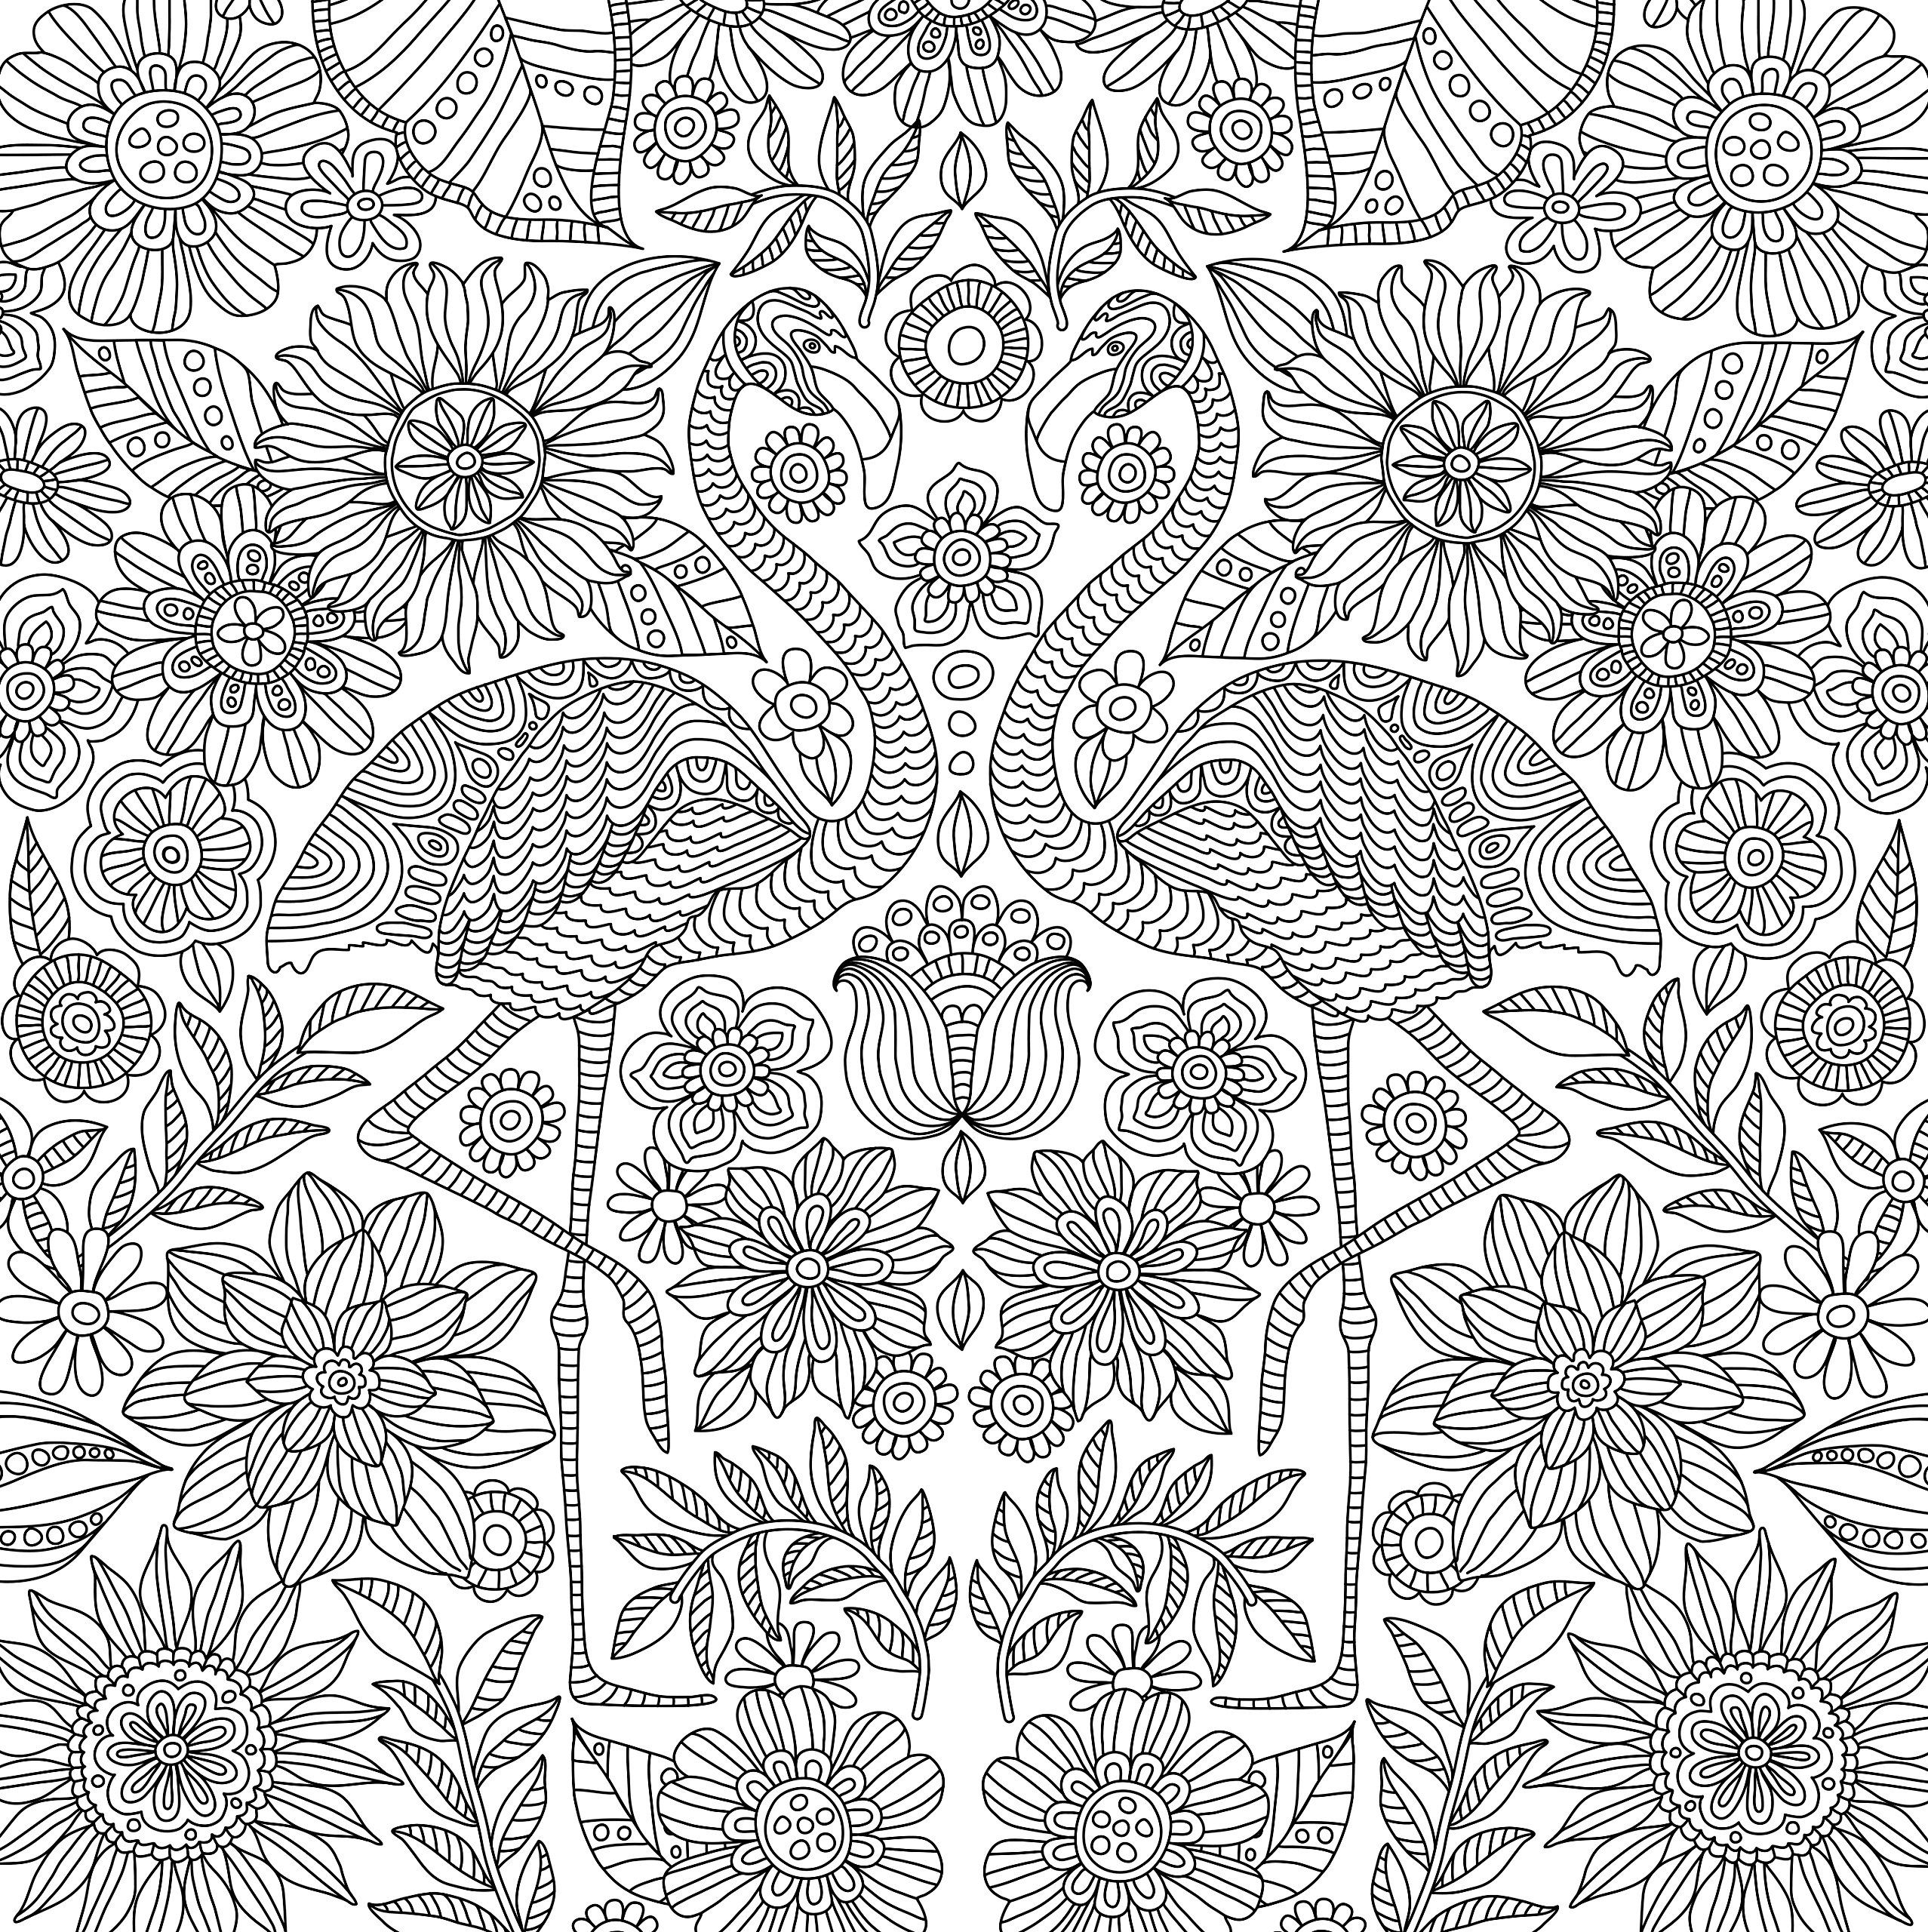 Blooms Birds And Butterflies Adult Coloring Book 31 Stress Relieving Designs Studio Series Art Coloring Books Animal Coloring Books Mandala Coloring Pages [ 2560 x 2555 Pixel ]